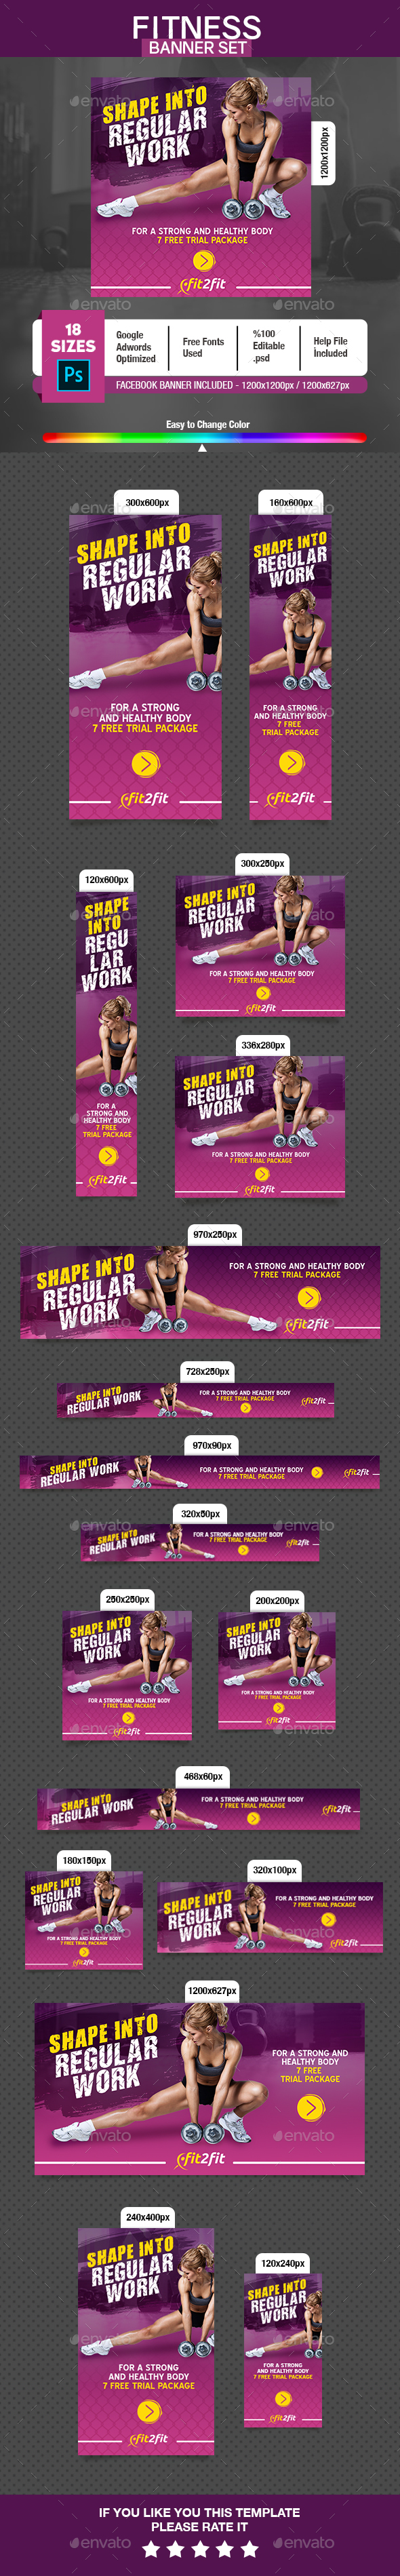 Fitness Banner - Banners & Ads Web Elements